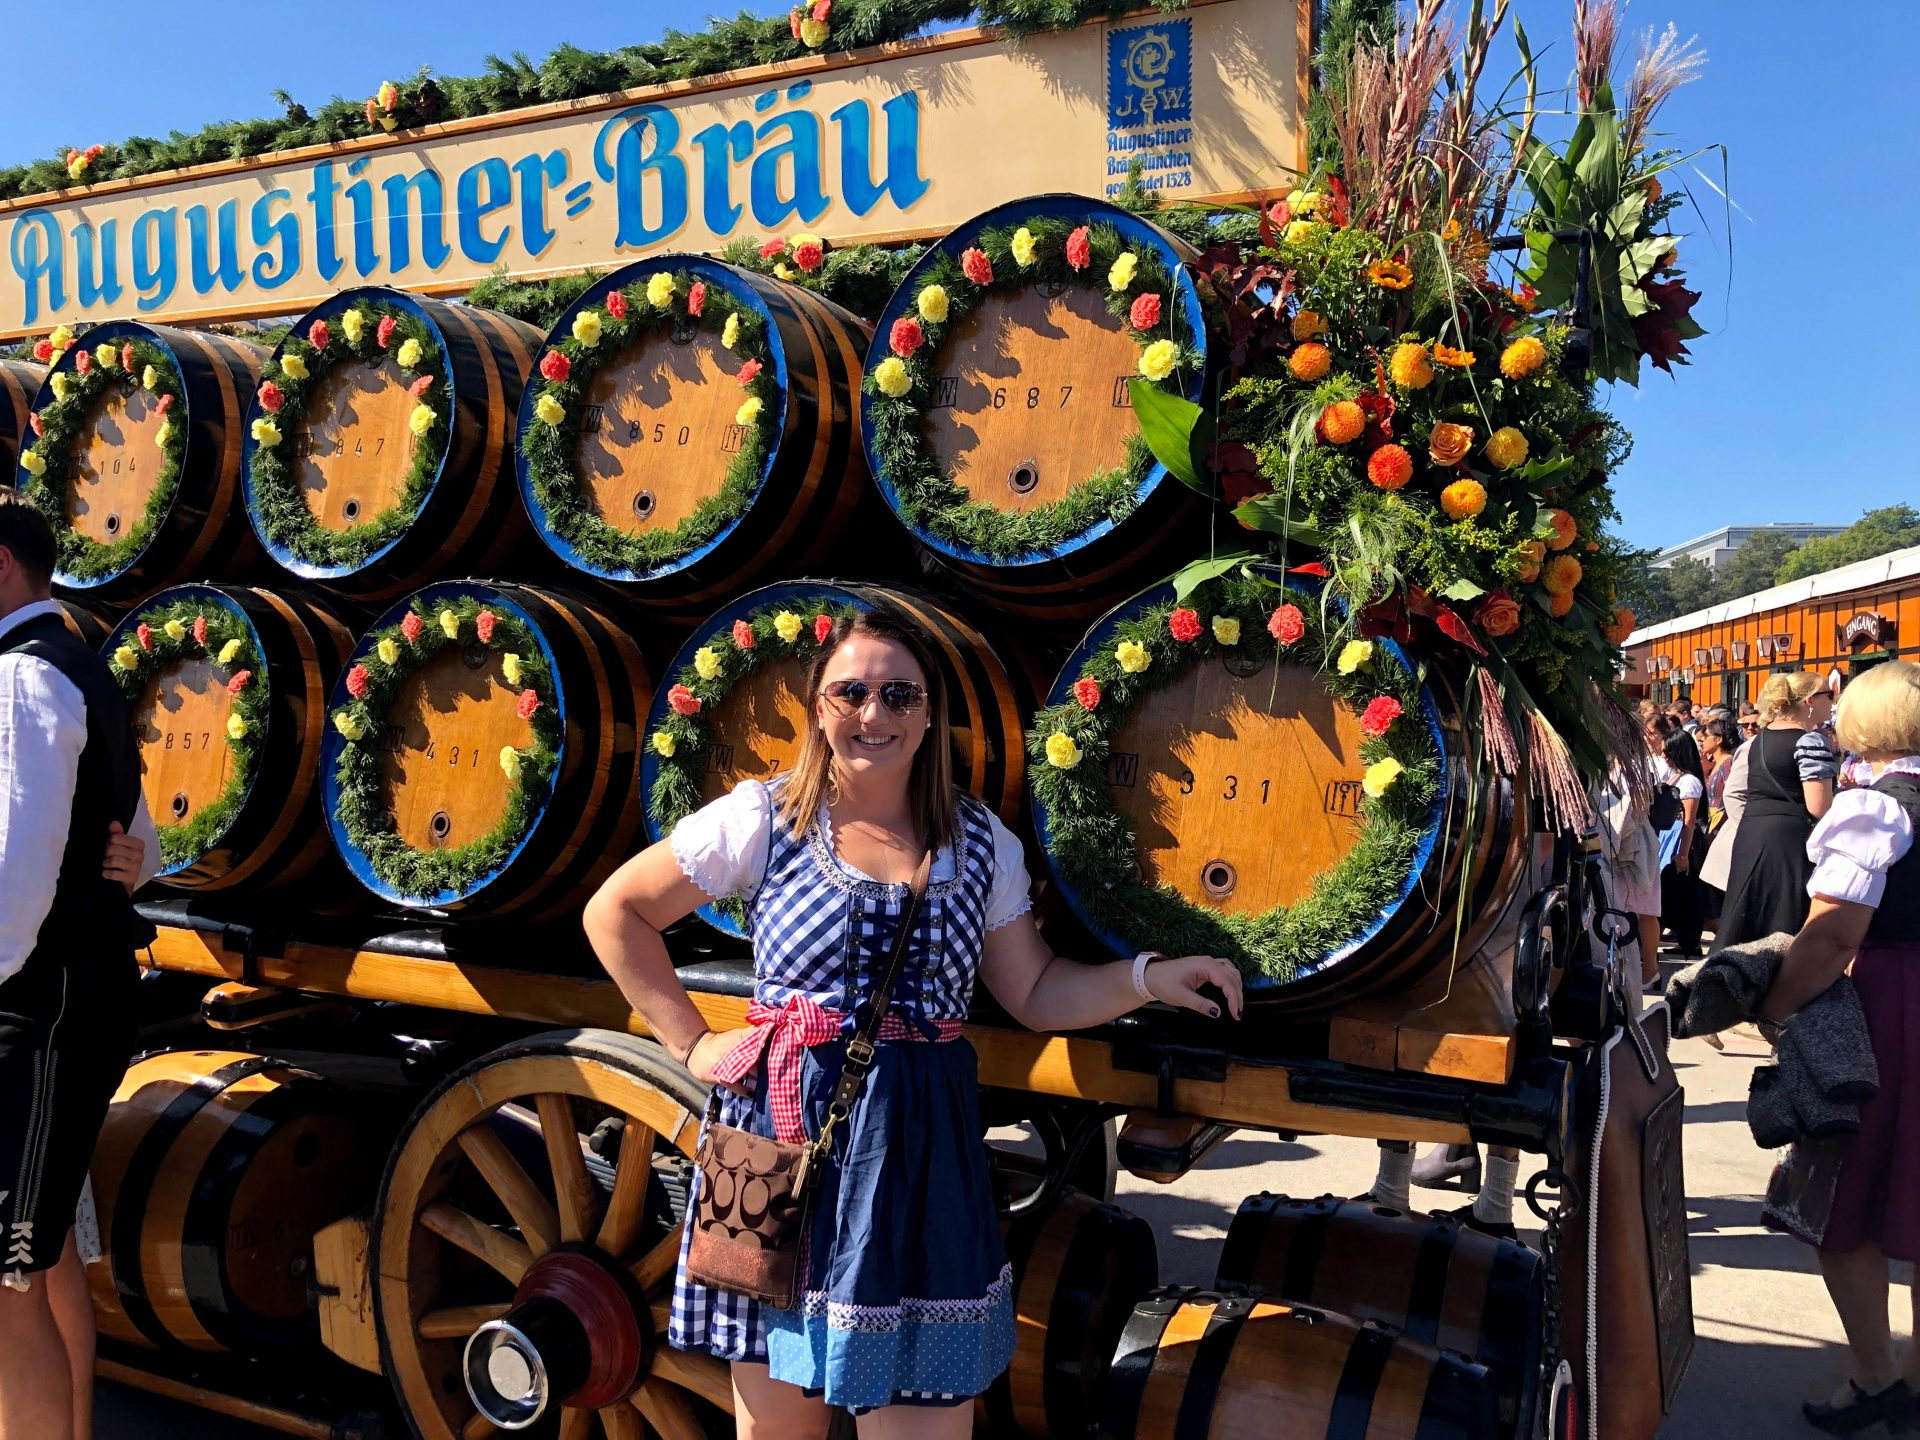 Woman wearing blue and red dirndl standing in front of a float from the Oktoberfest parade in Munich Germany.